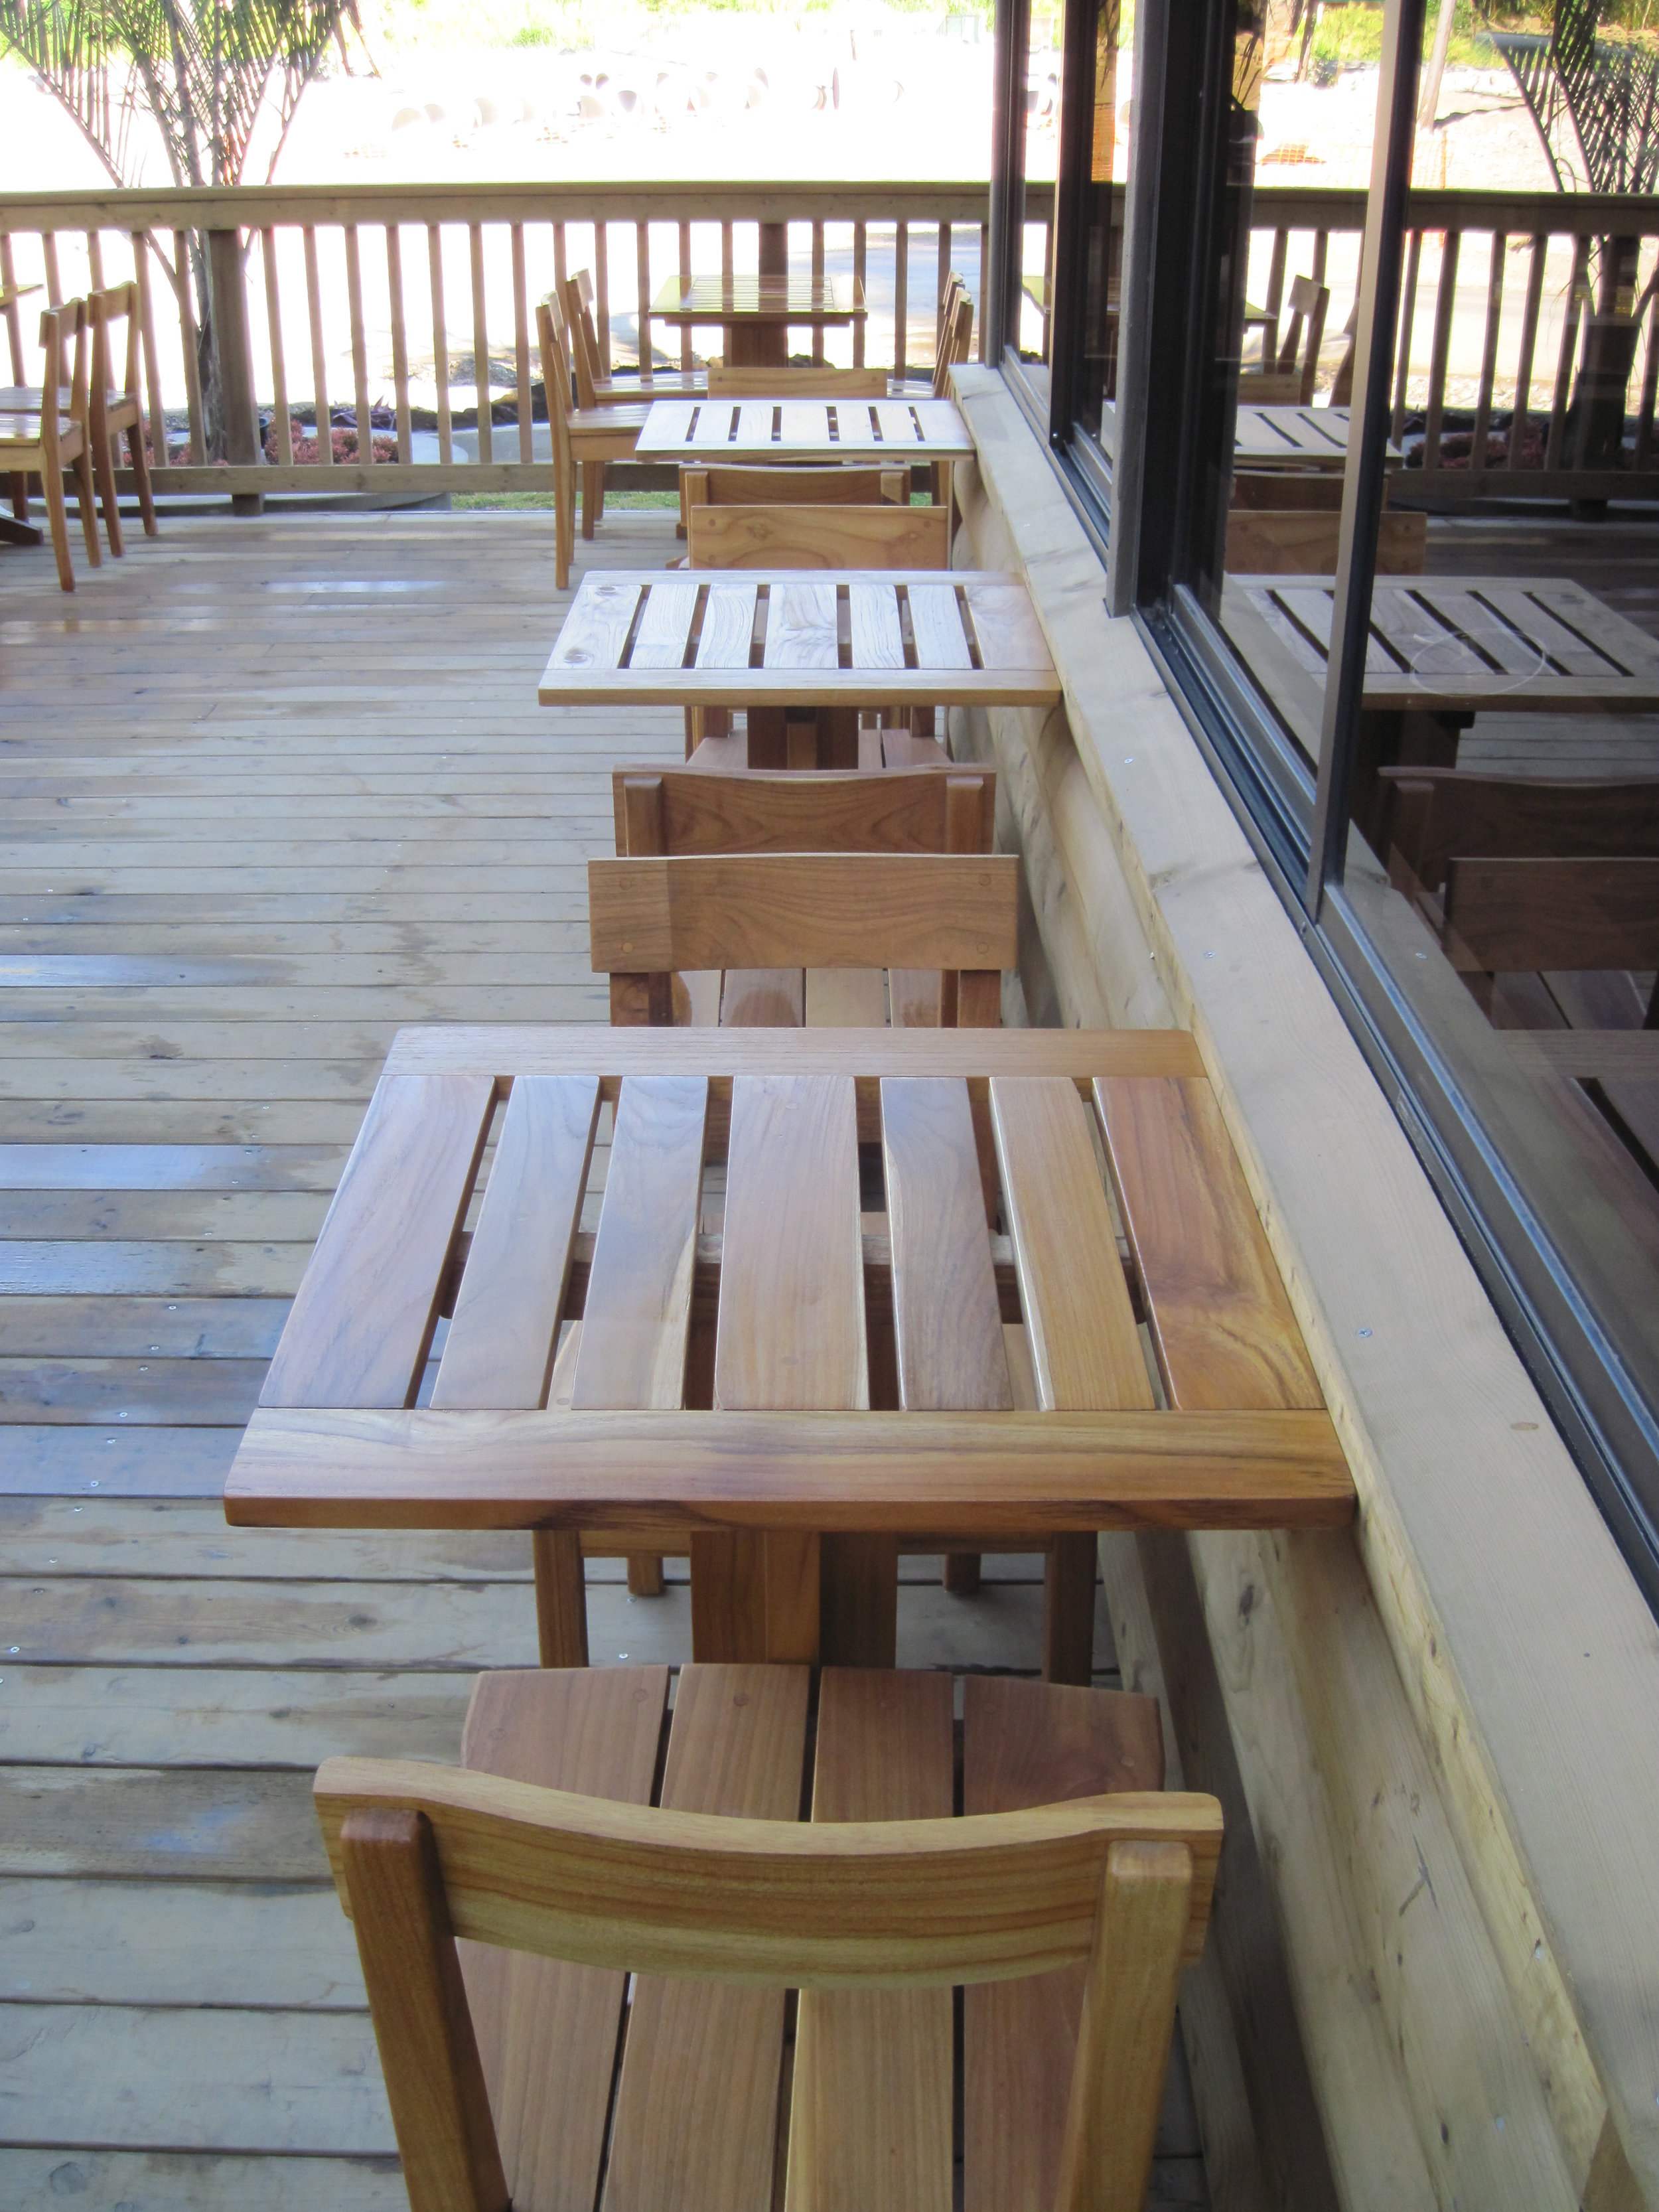 We furnished the Toco Madera restaurant at Hotel Ladera, Boquete, using 100% Panamanian plantation teak